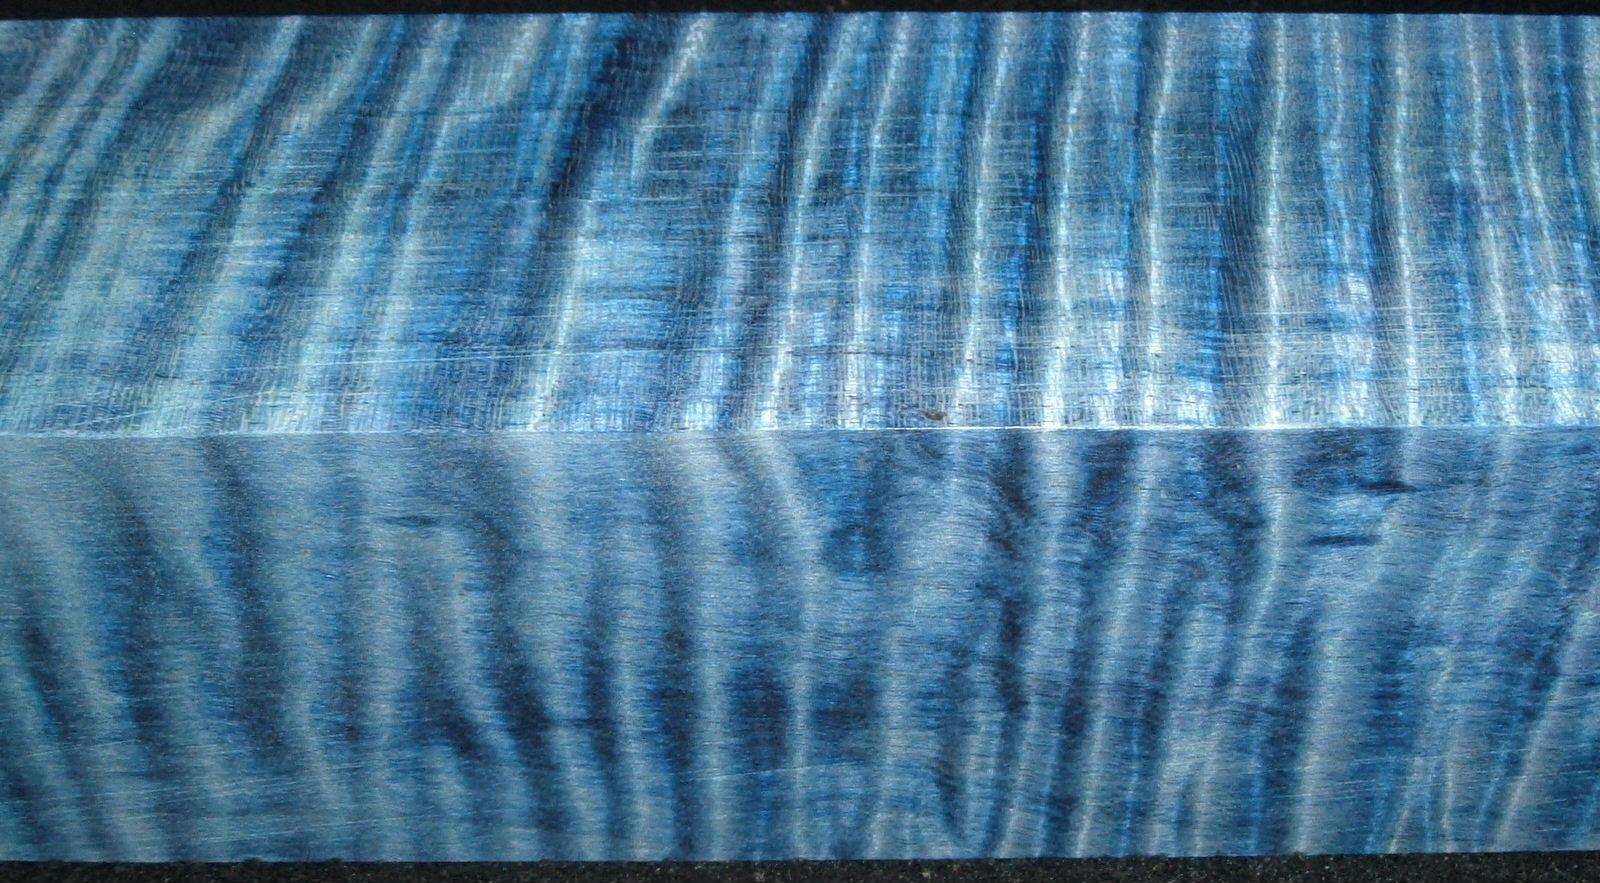 Z389, Curly Tiger Maple Dyed Stabilized, wood turning block, Blue, 1-7/8x1-7/8x6-1/2